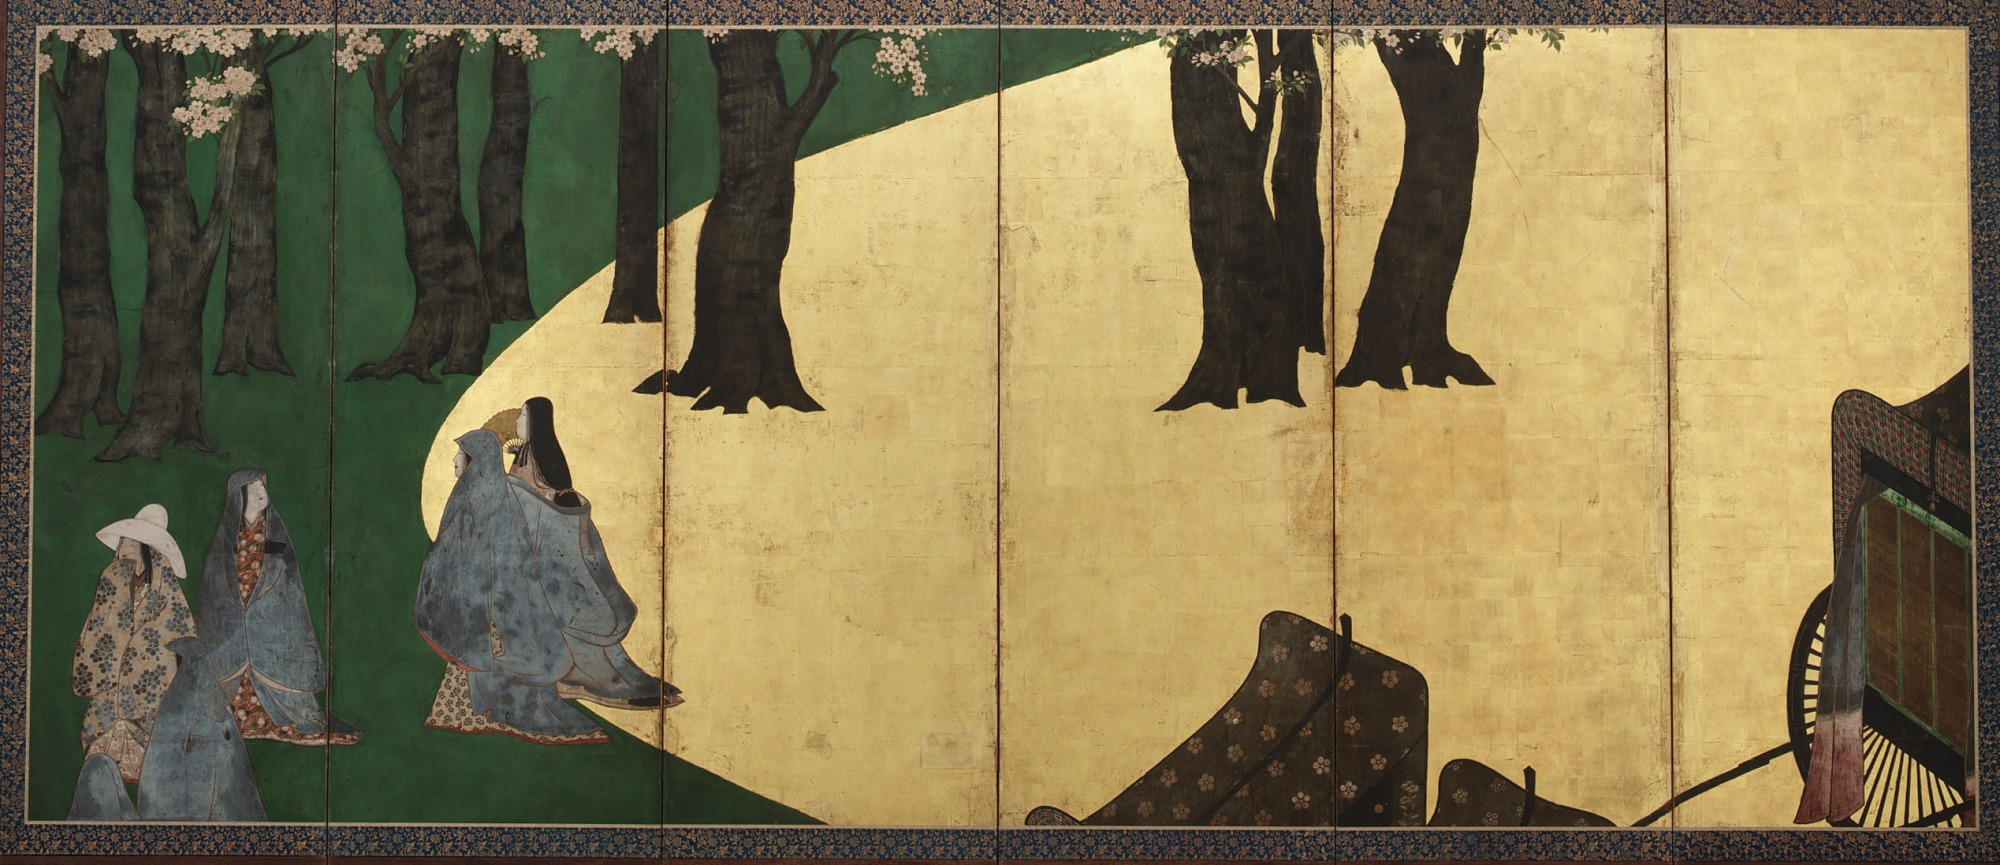 F1903.101: Court Ladies among cherry trees (left); Cherry blossoms, a high fence and retainers (right)